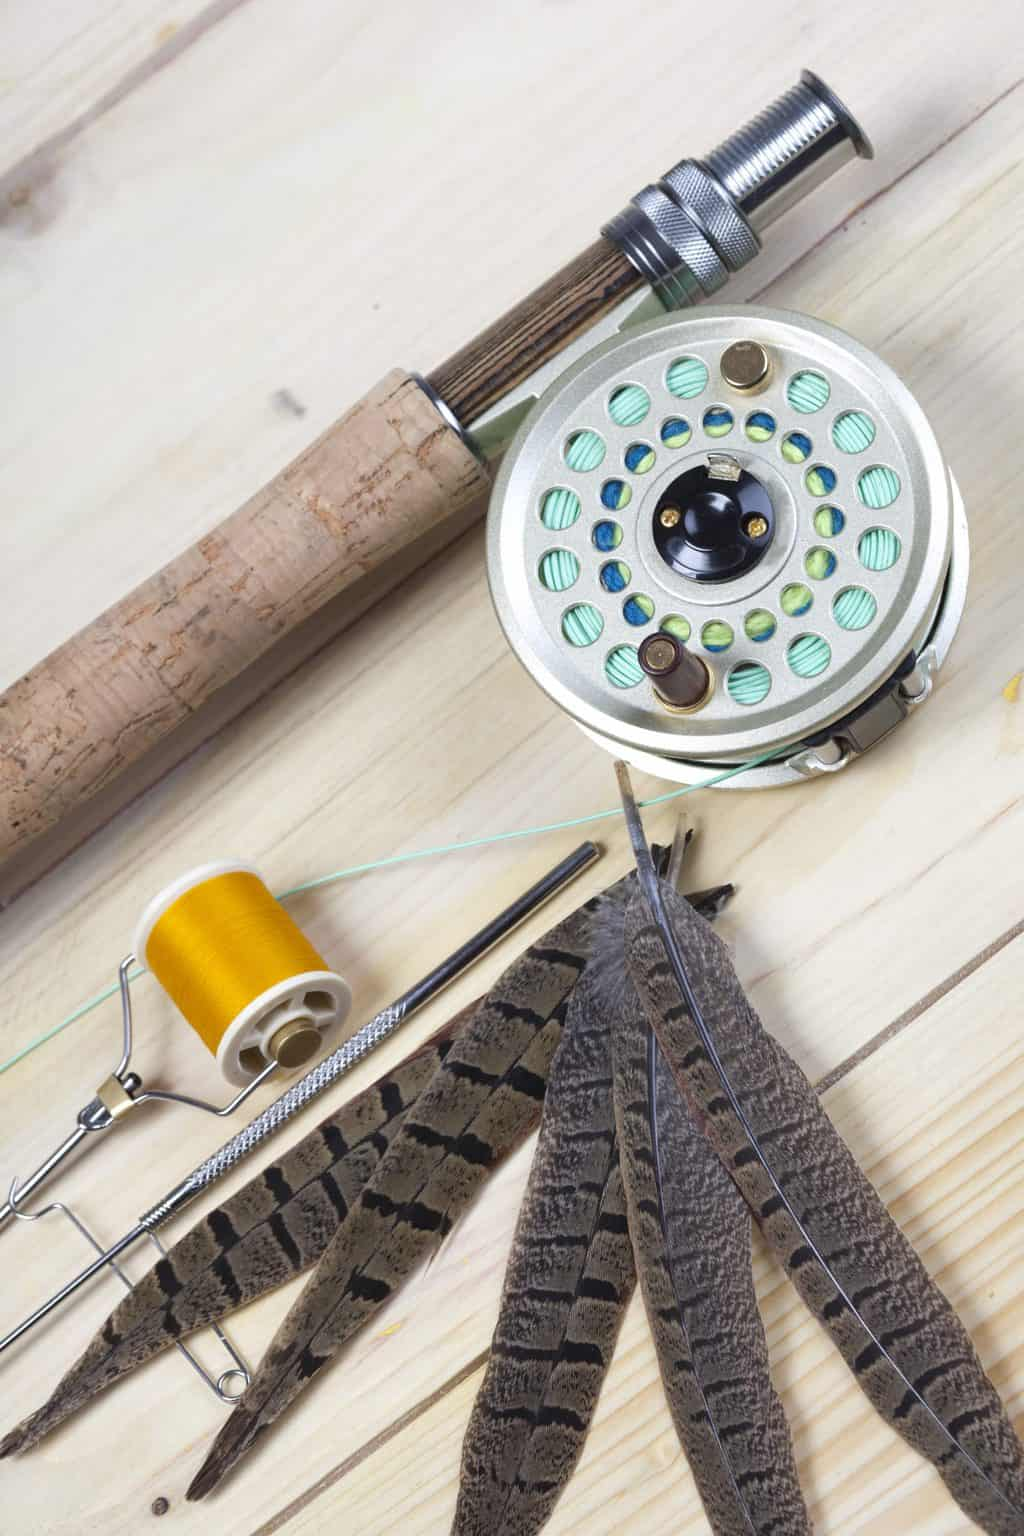 a fly fishing rod and reel lying on a wooden surface. also some feathers. Will fishing line melt or burn?